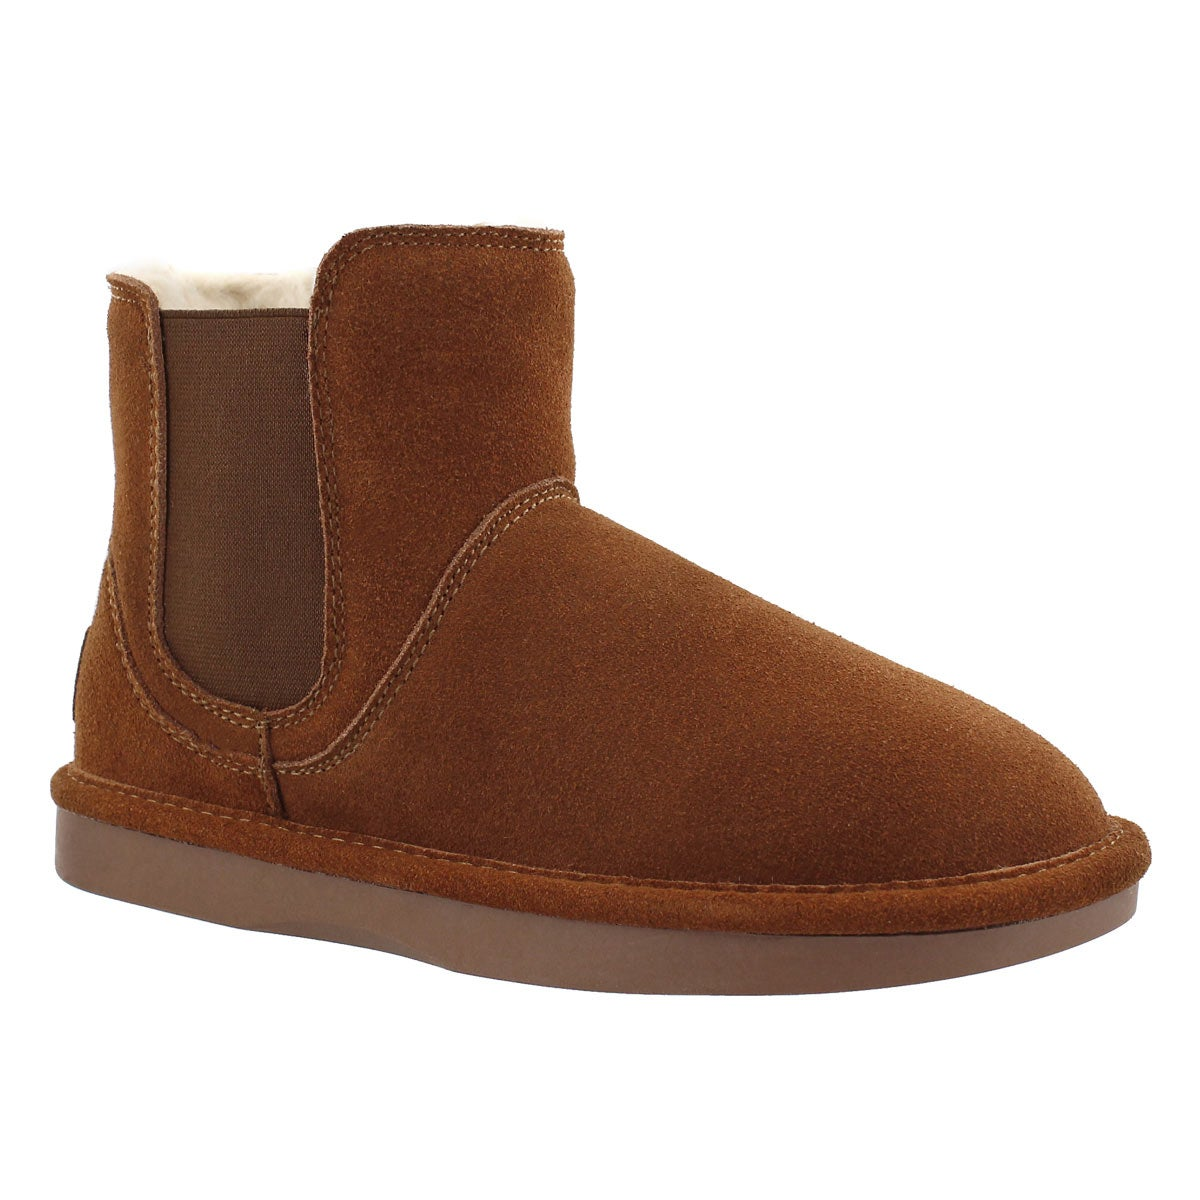 Women's SMOCS 5 spice chelsea suede boots